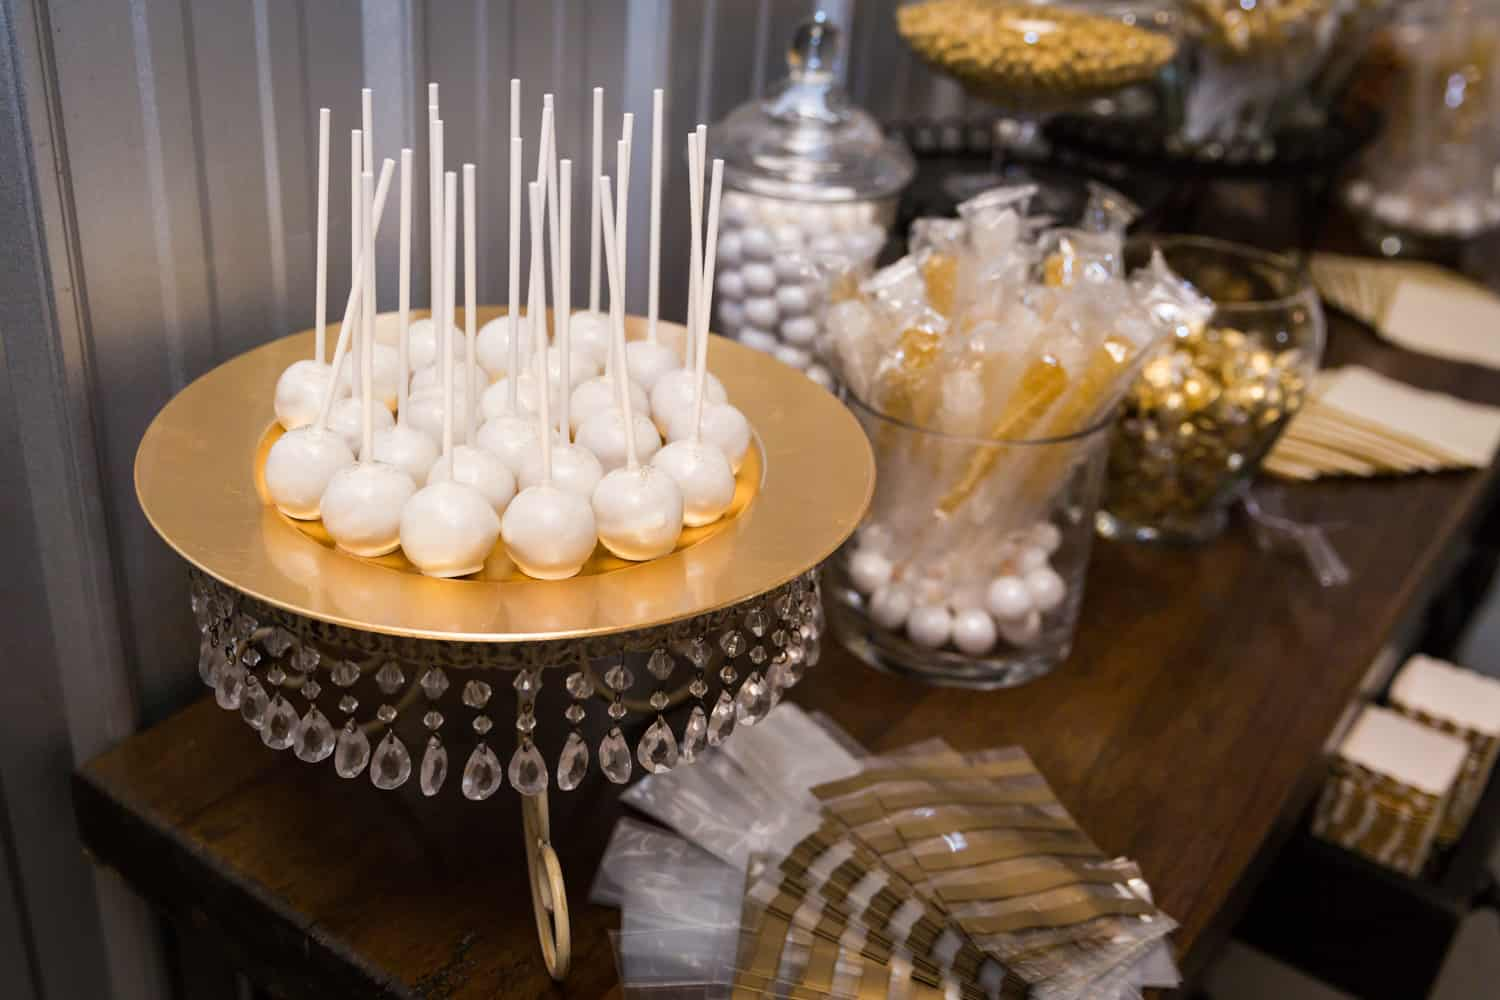 Plate of white cake pops and bowl of candies